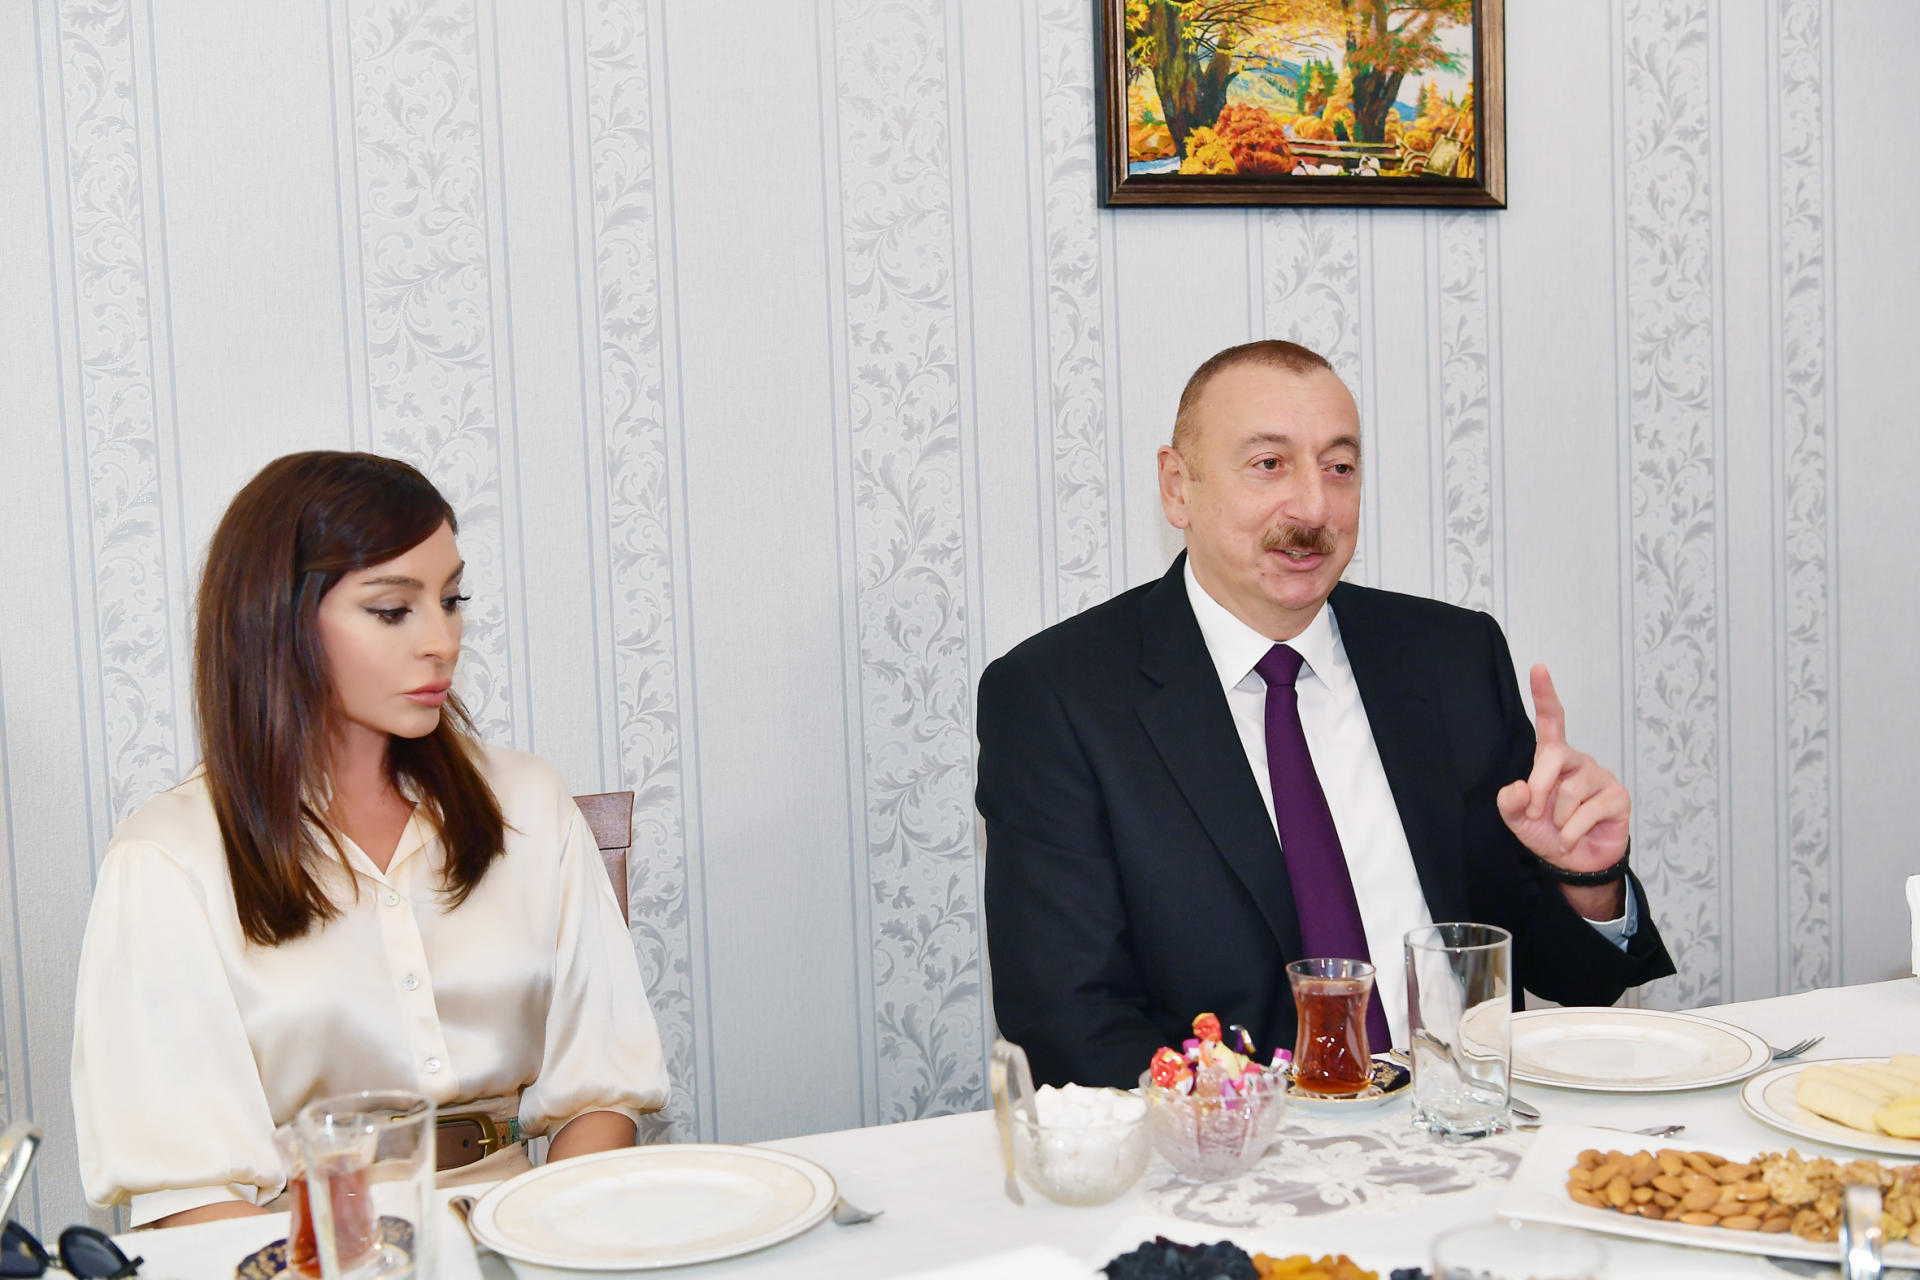 Ilham Aliyev: I am telling truth from platforms where whole world can hear